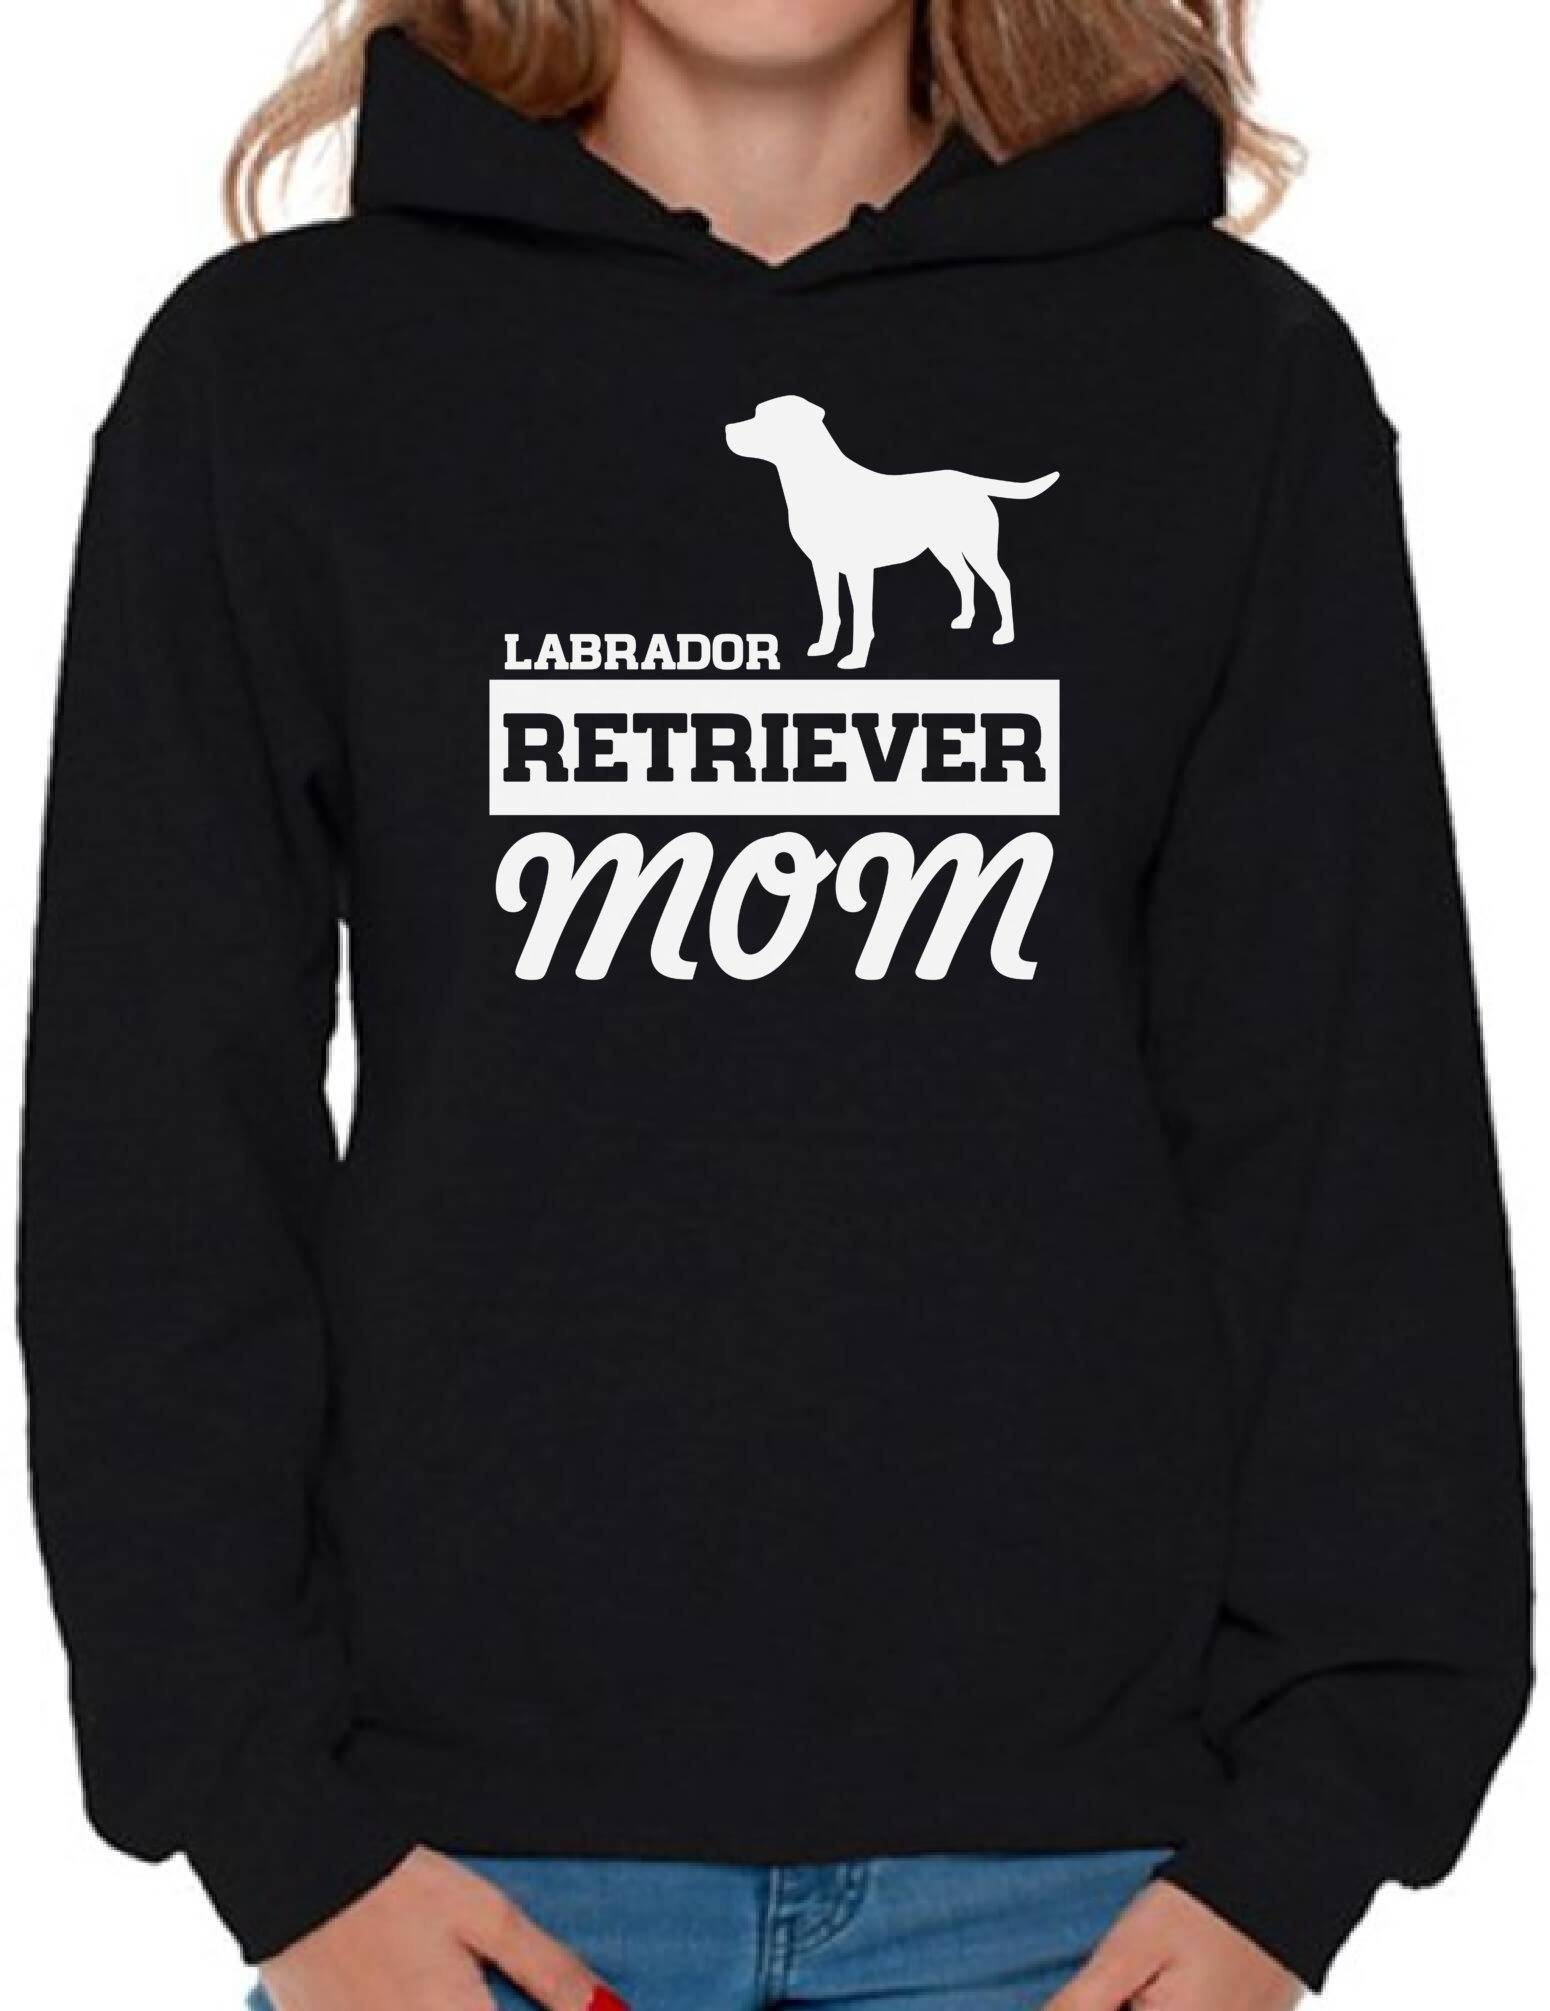 Awkward Styles Women's Labrador Retriever Mom Graphic Hoodie Tops Dog Mom Black L by Awkward Styles (Image #1)